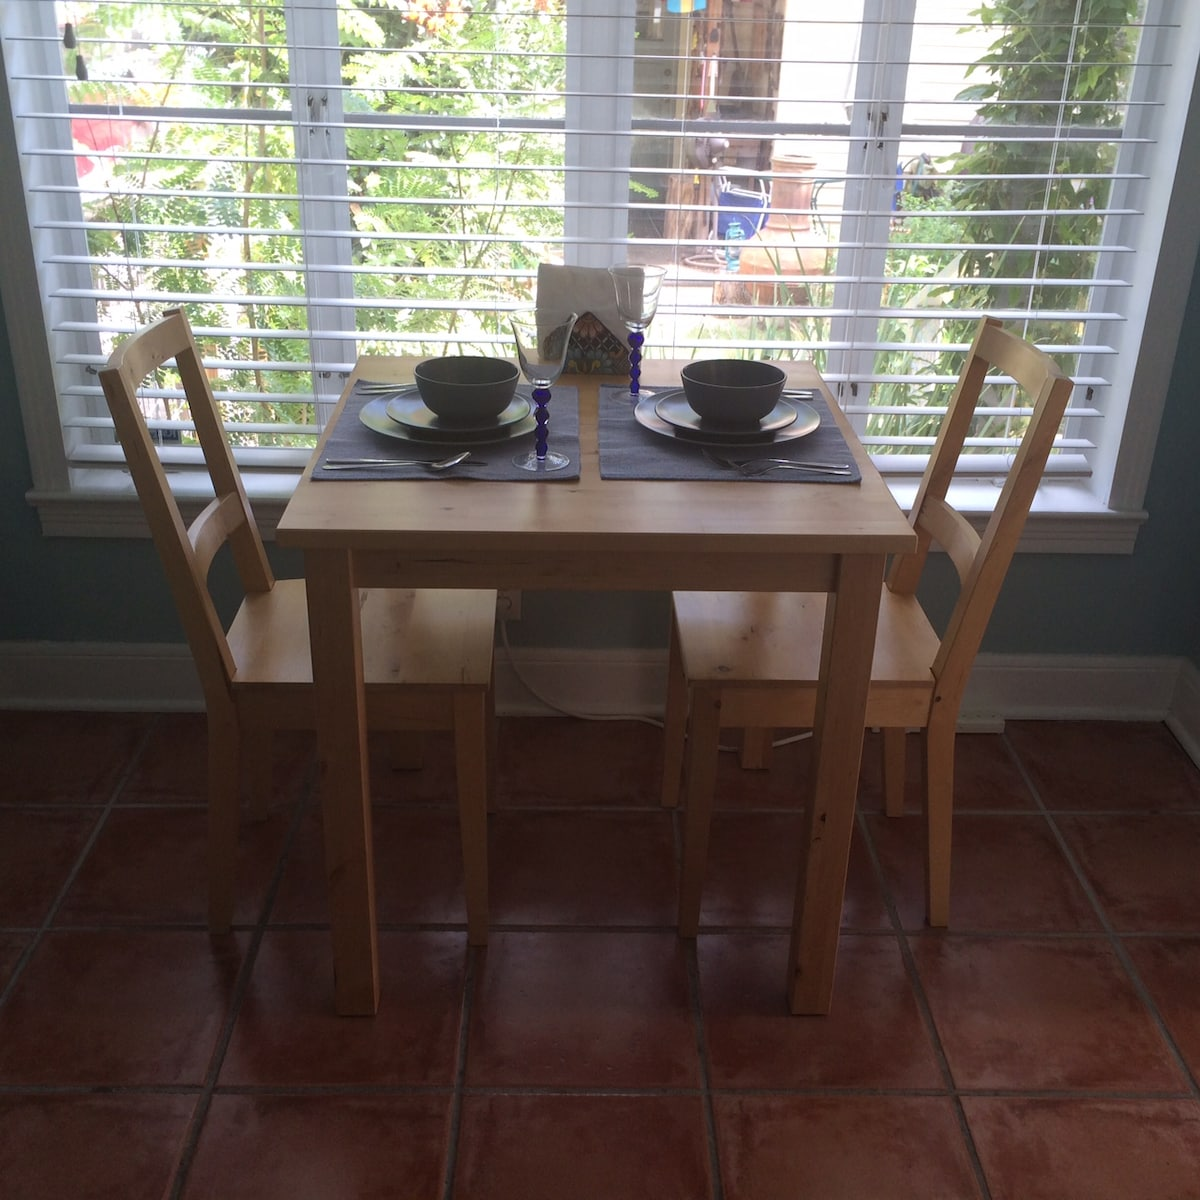 Sunny kitchen, seating for two